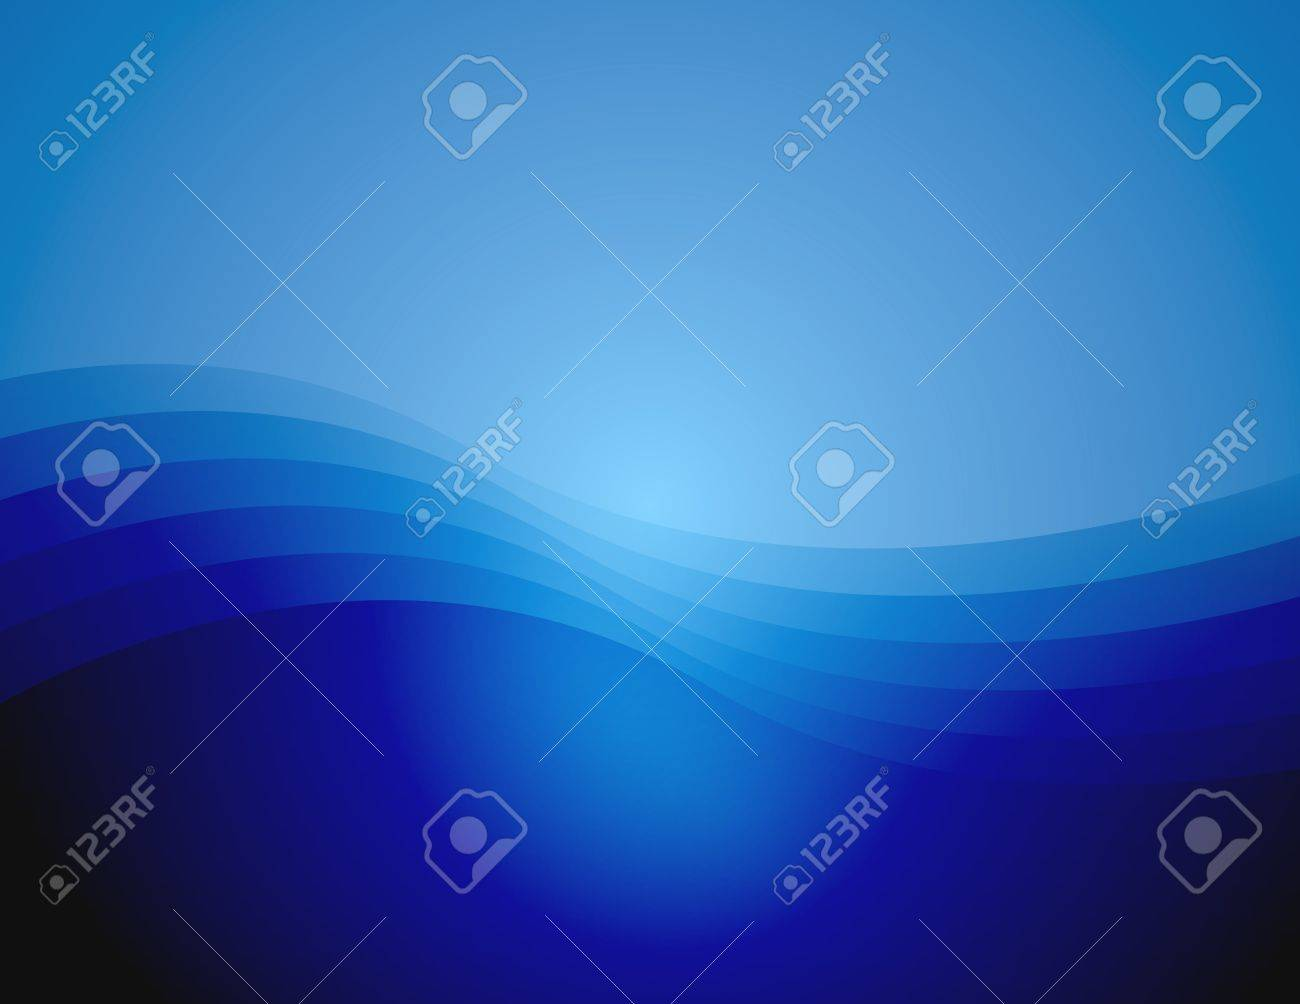 Background with gradient and waves Stock Photo - 692218